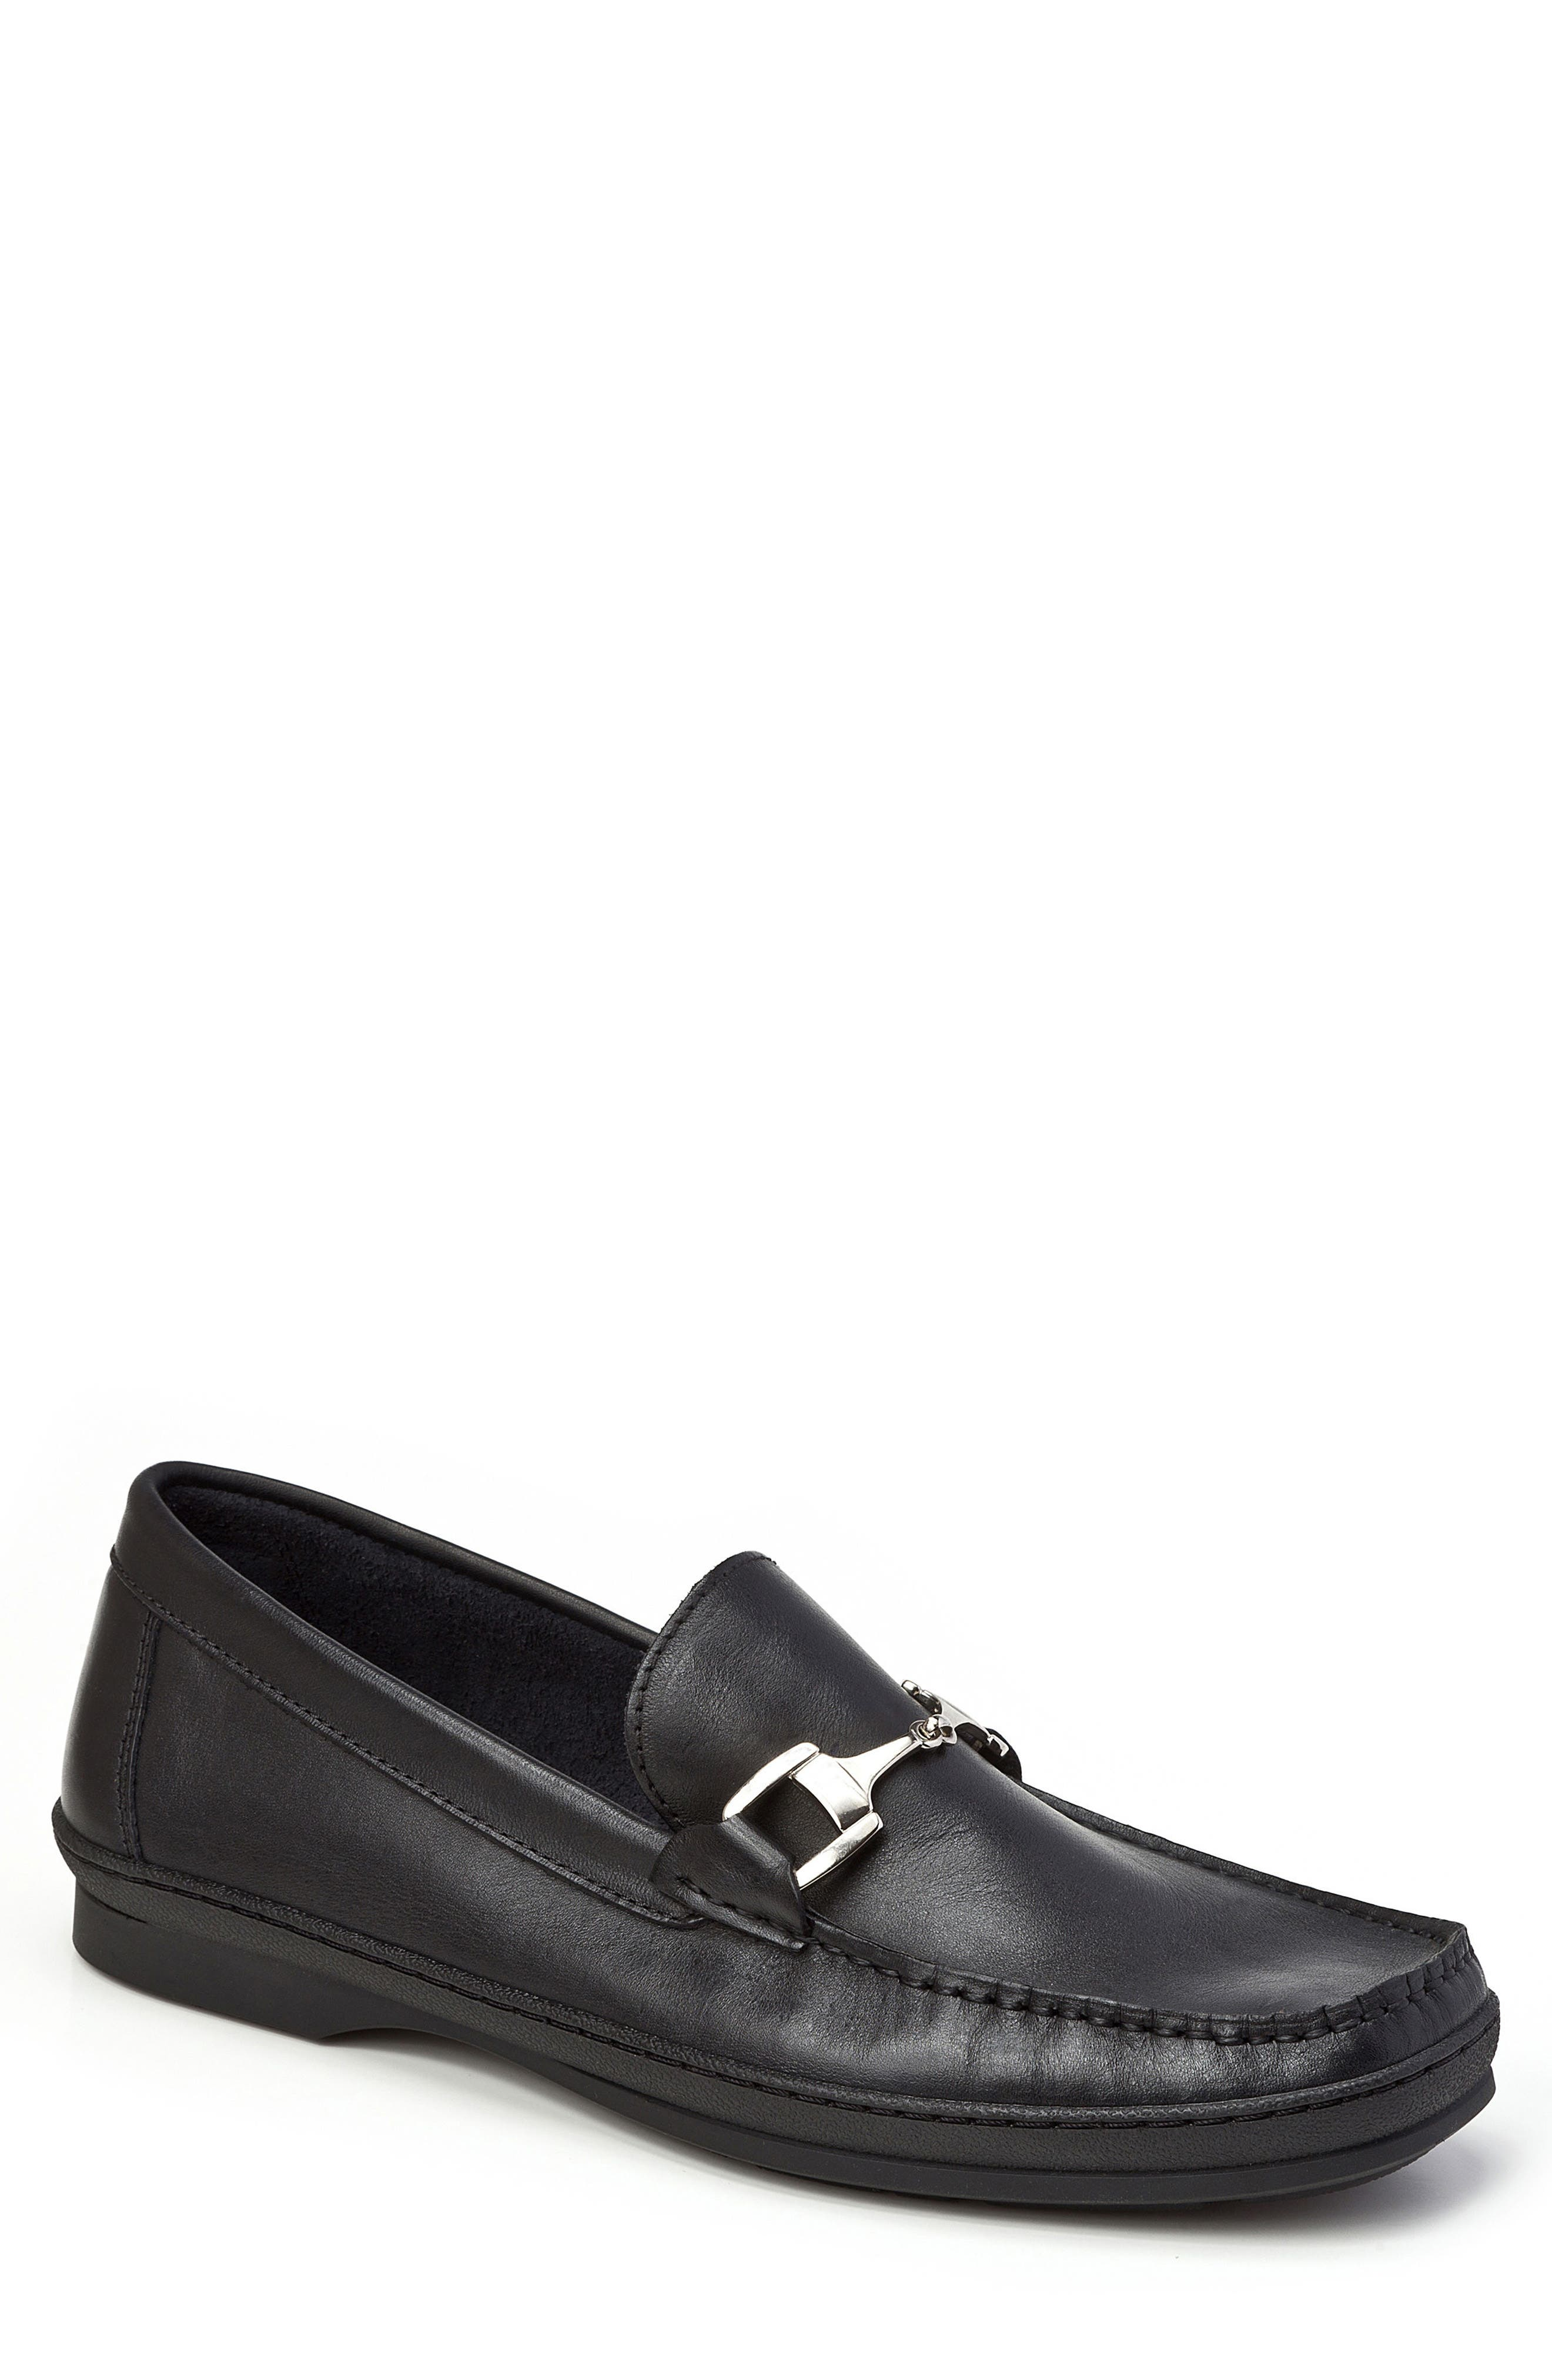 Navarro Bit Loafer,                             Main thumbnail 1, color,                             001